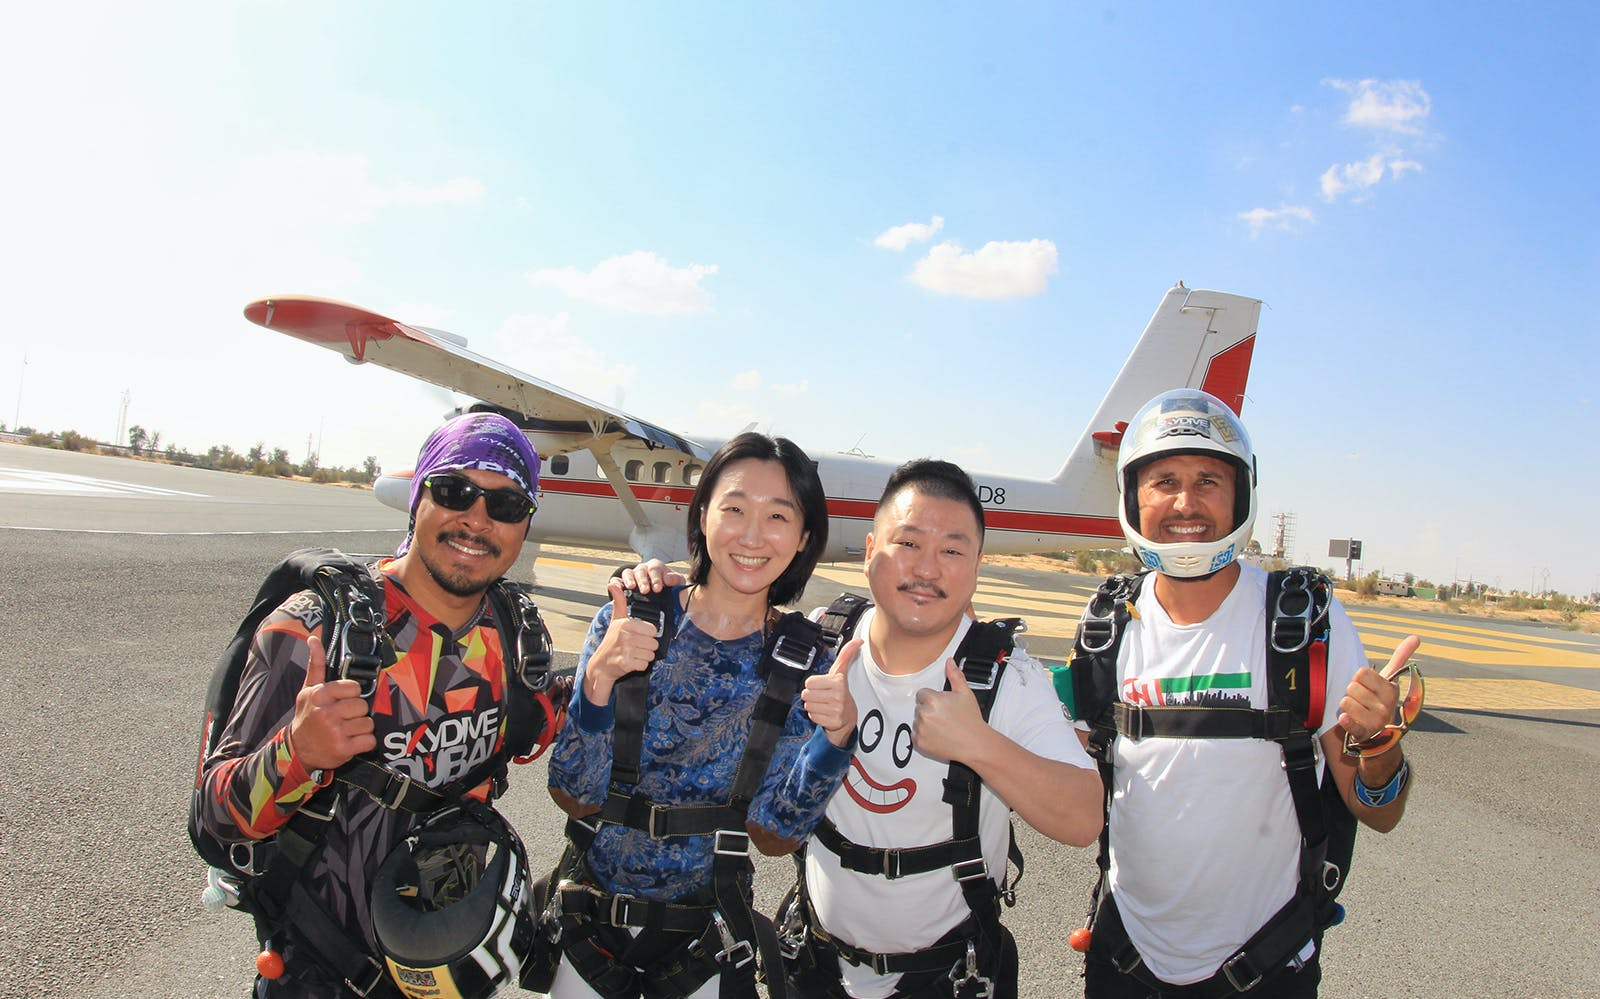 tandem skydiving at desert campus drop zone + free burj khalifa or desert safari-3